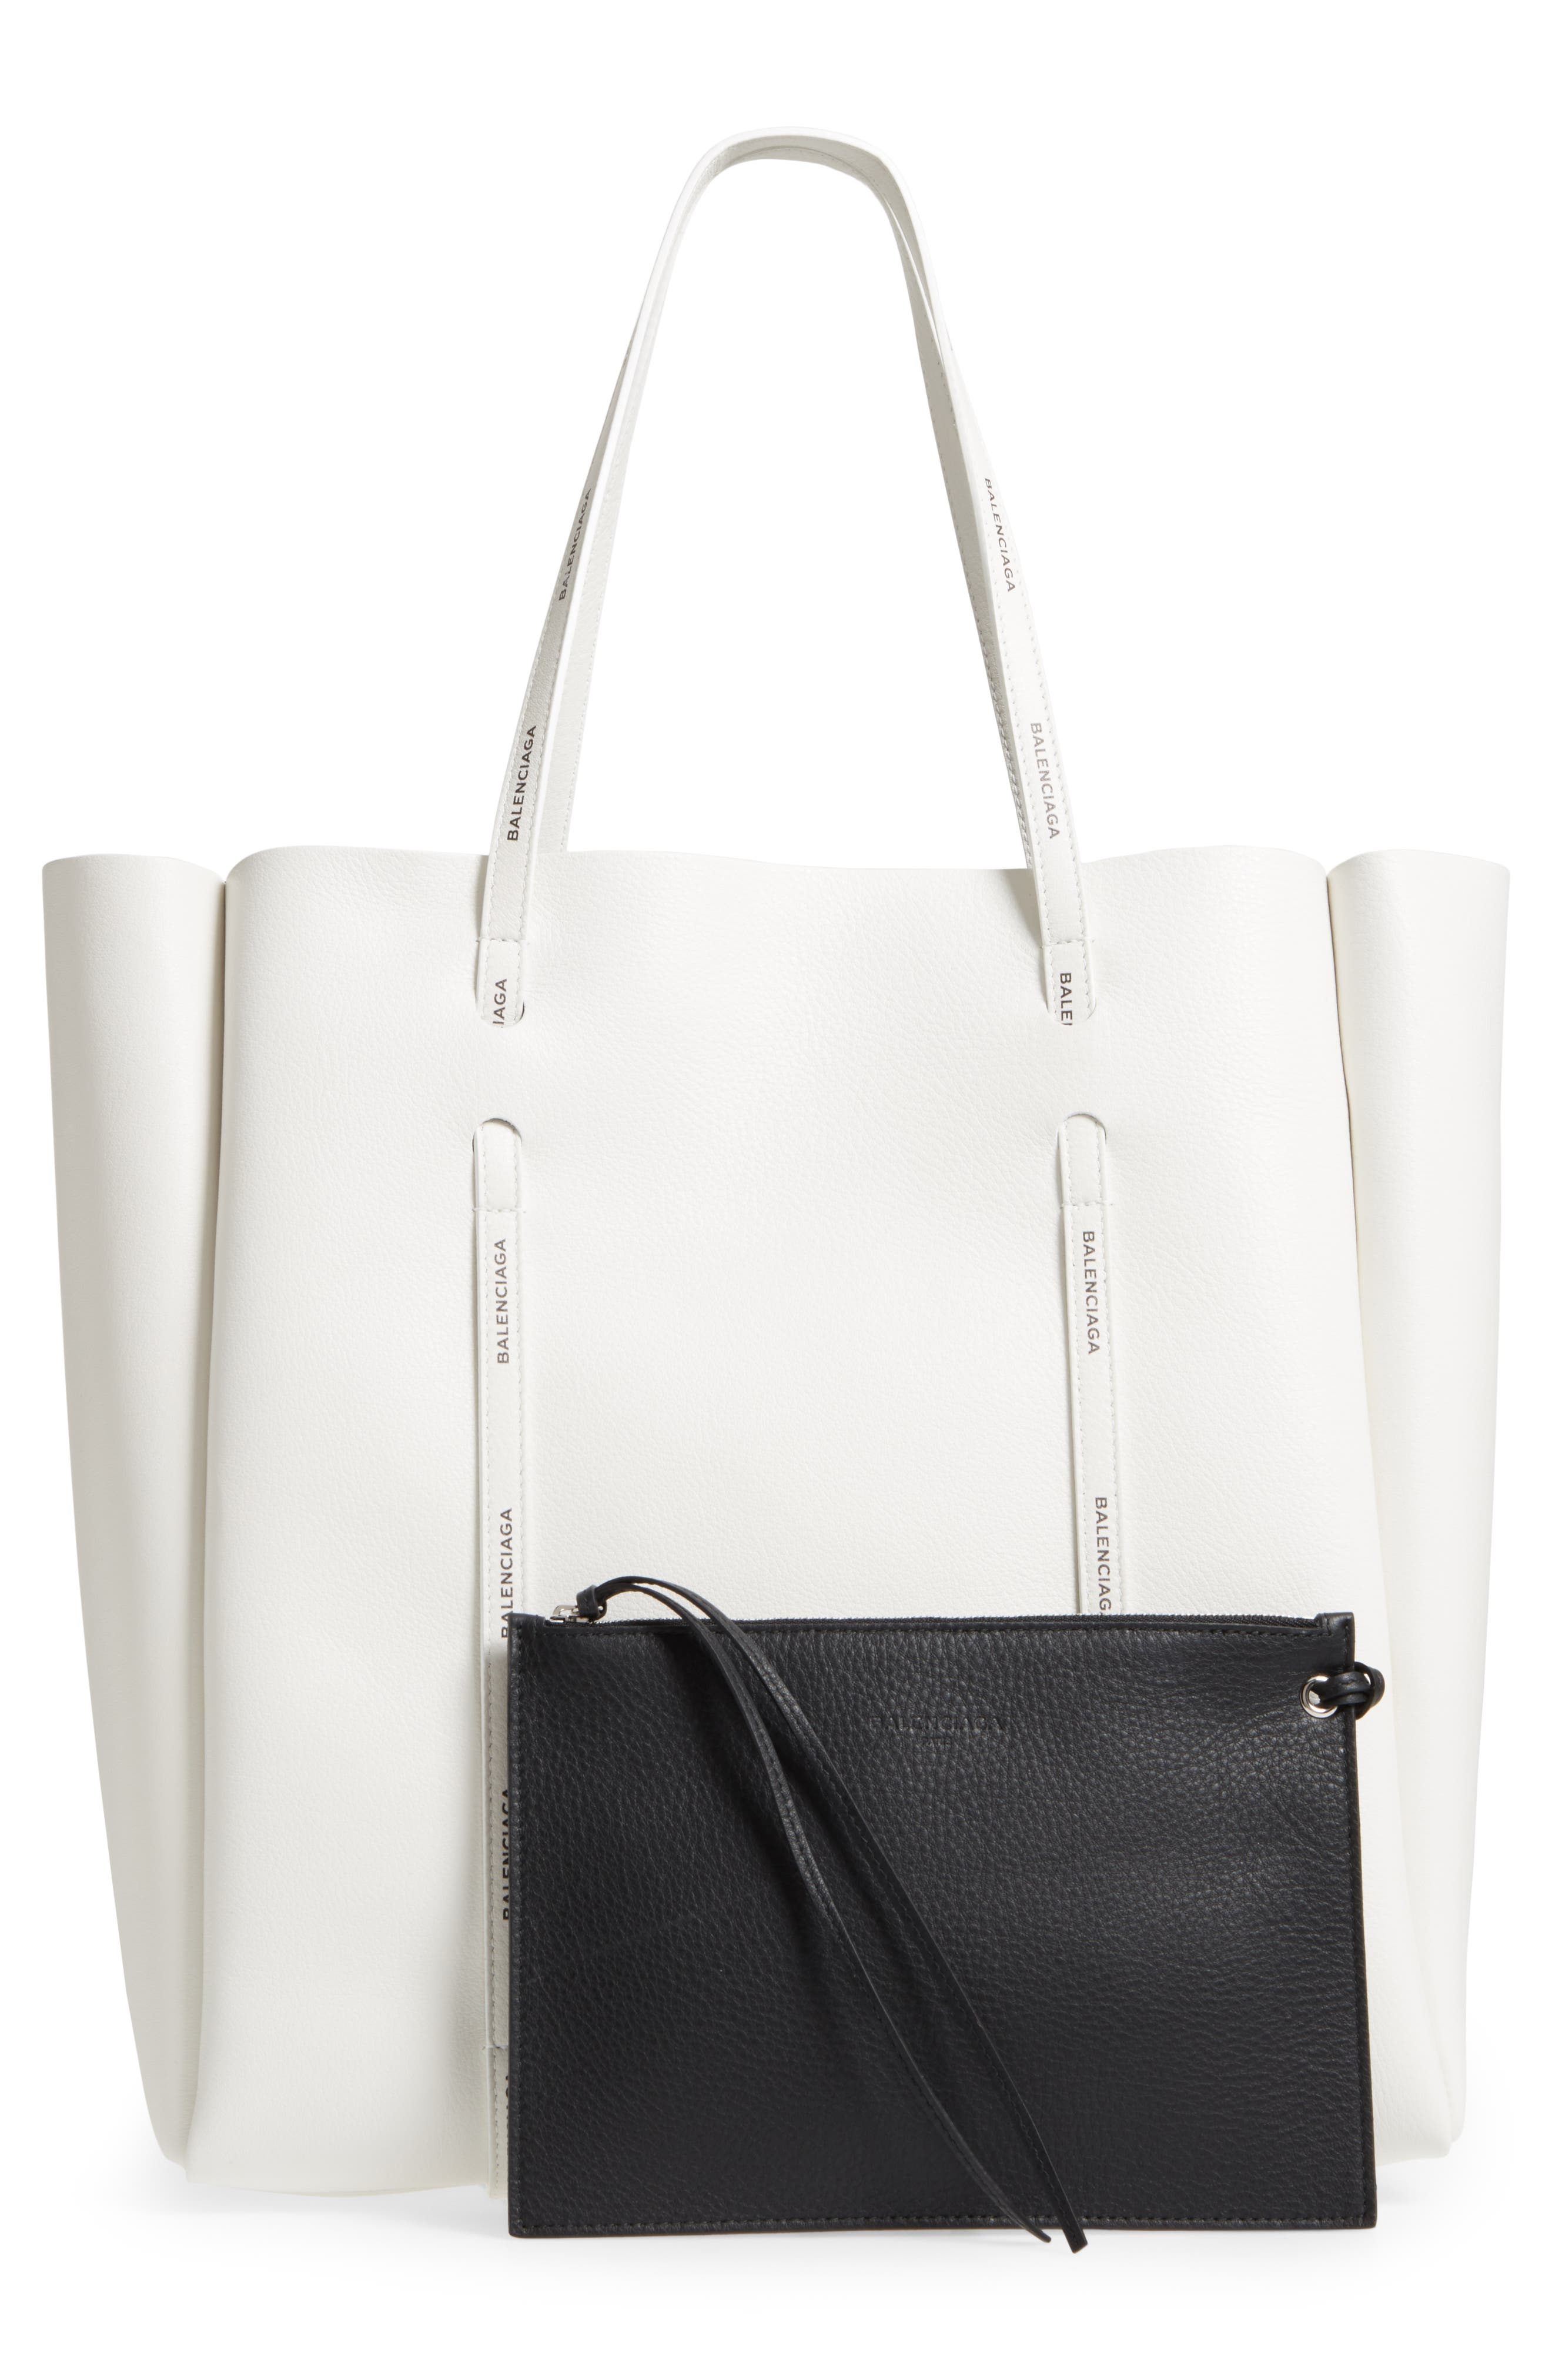 Medium Everyday Calfskin Tote,                             Alternate thumbnail 3, color,                             BLANC/ BLACK